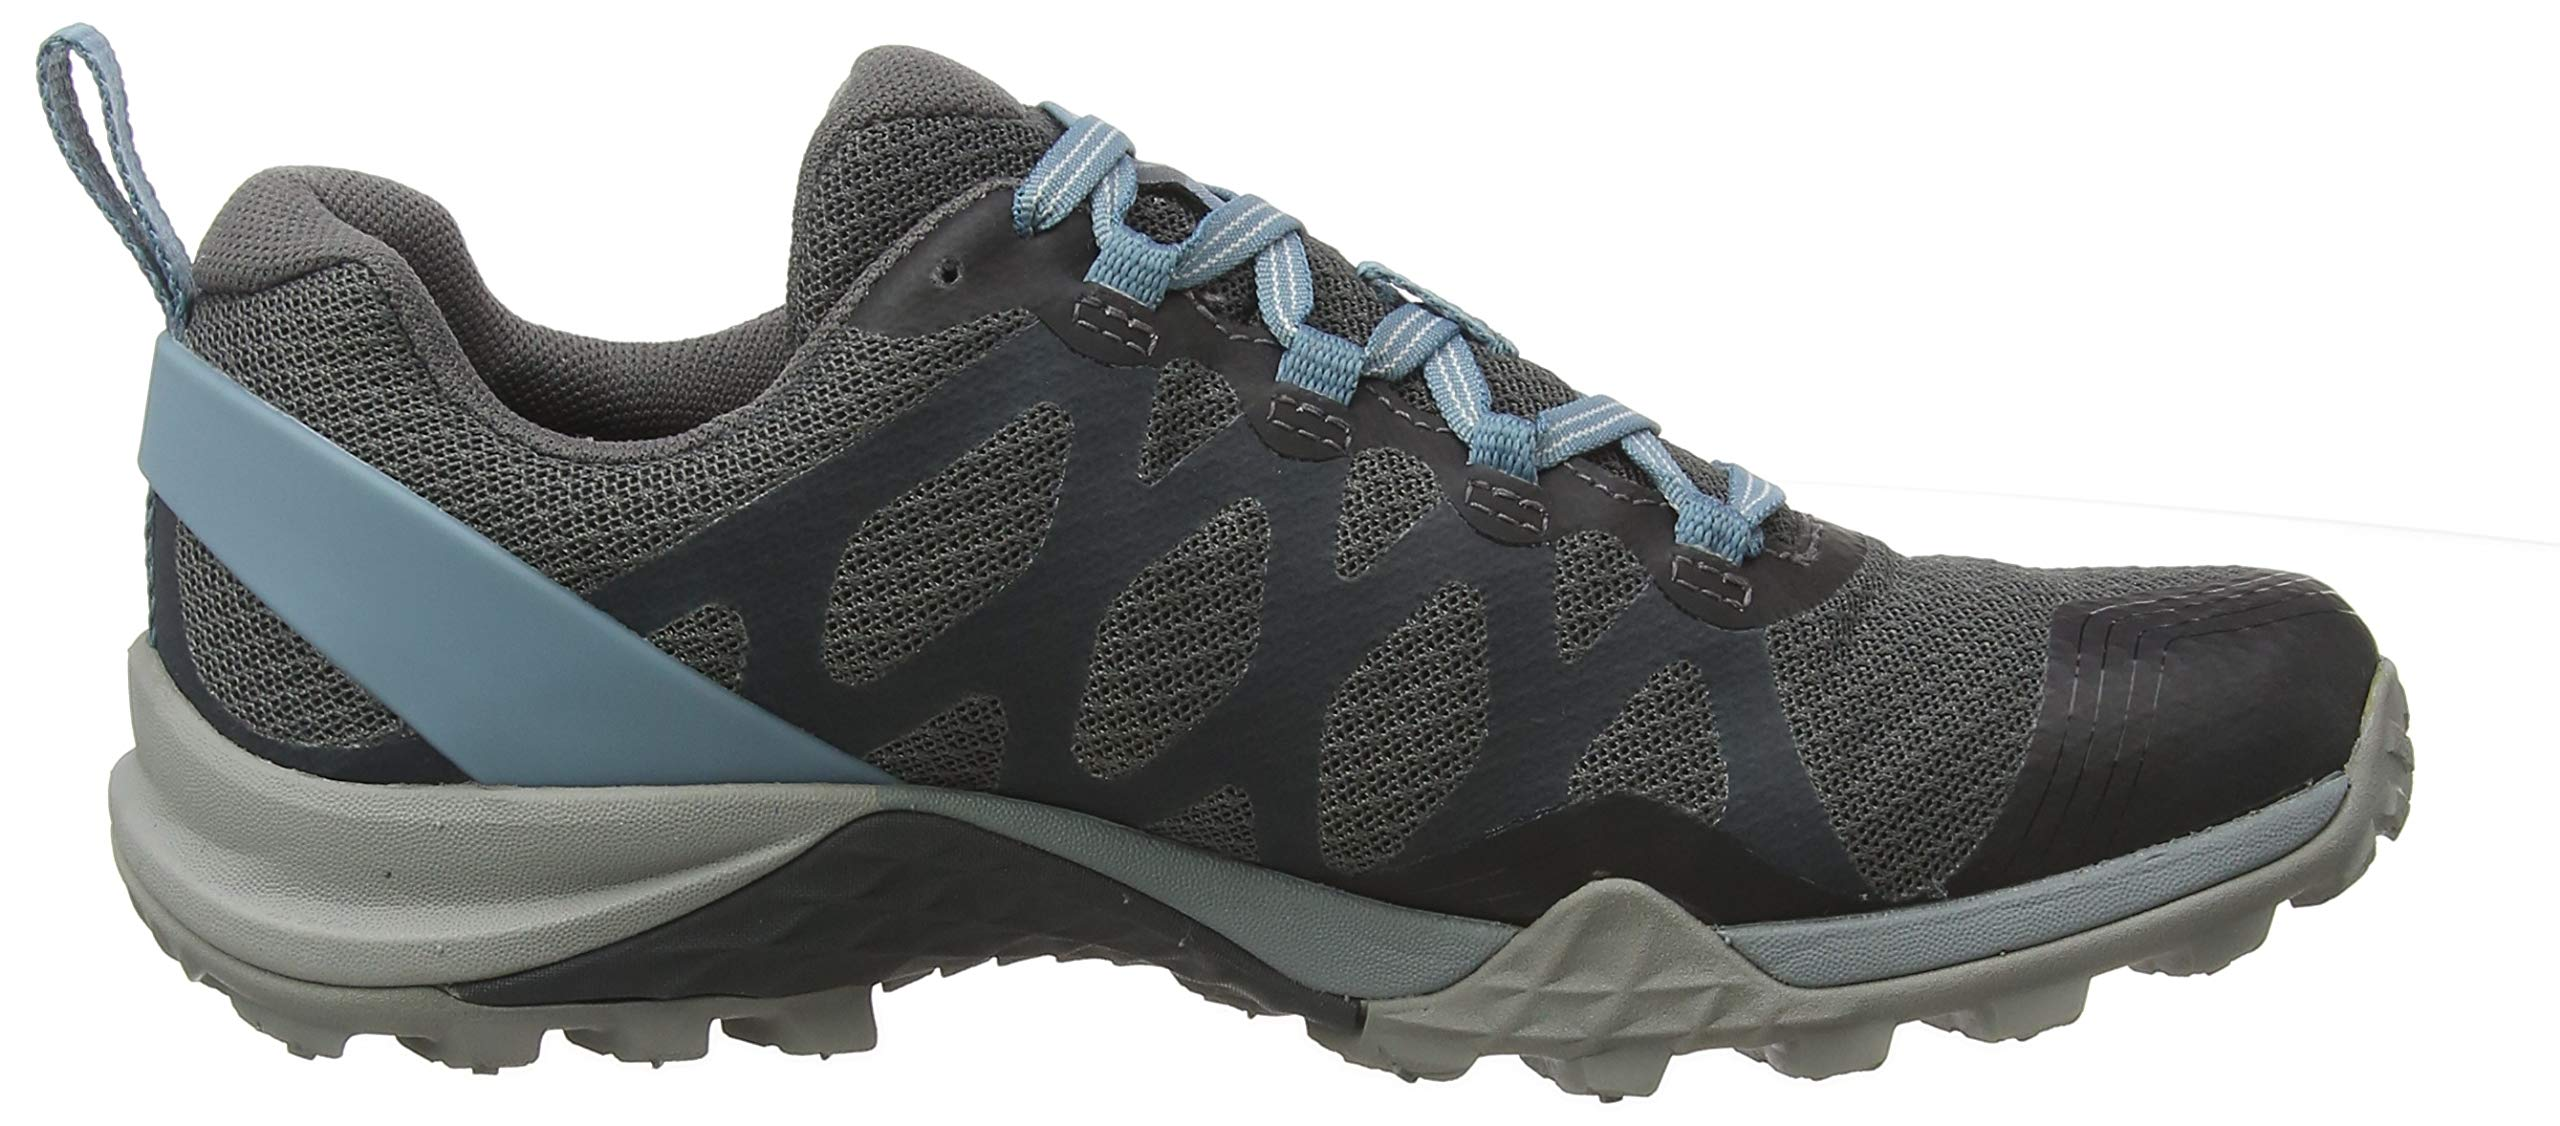 Merrell Women's Siren 3 Gore-tex Low Rise Hiking Boots 6